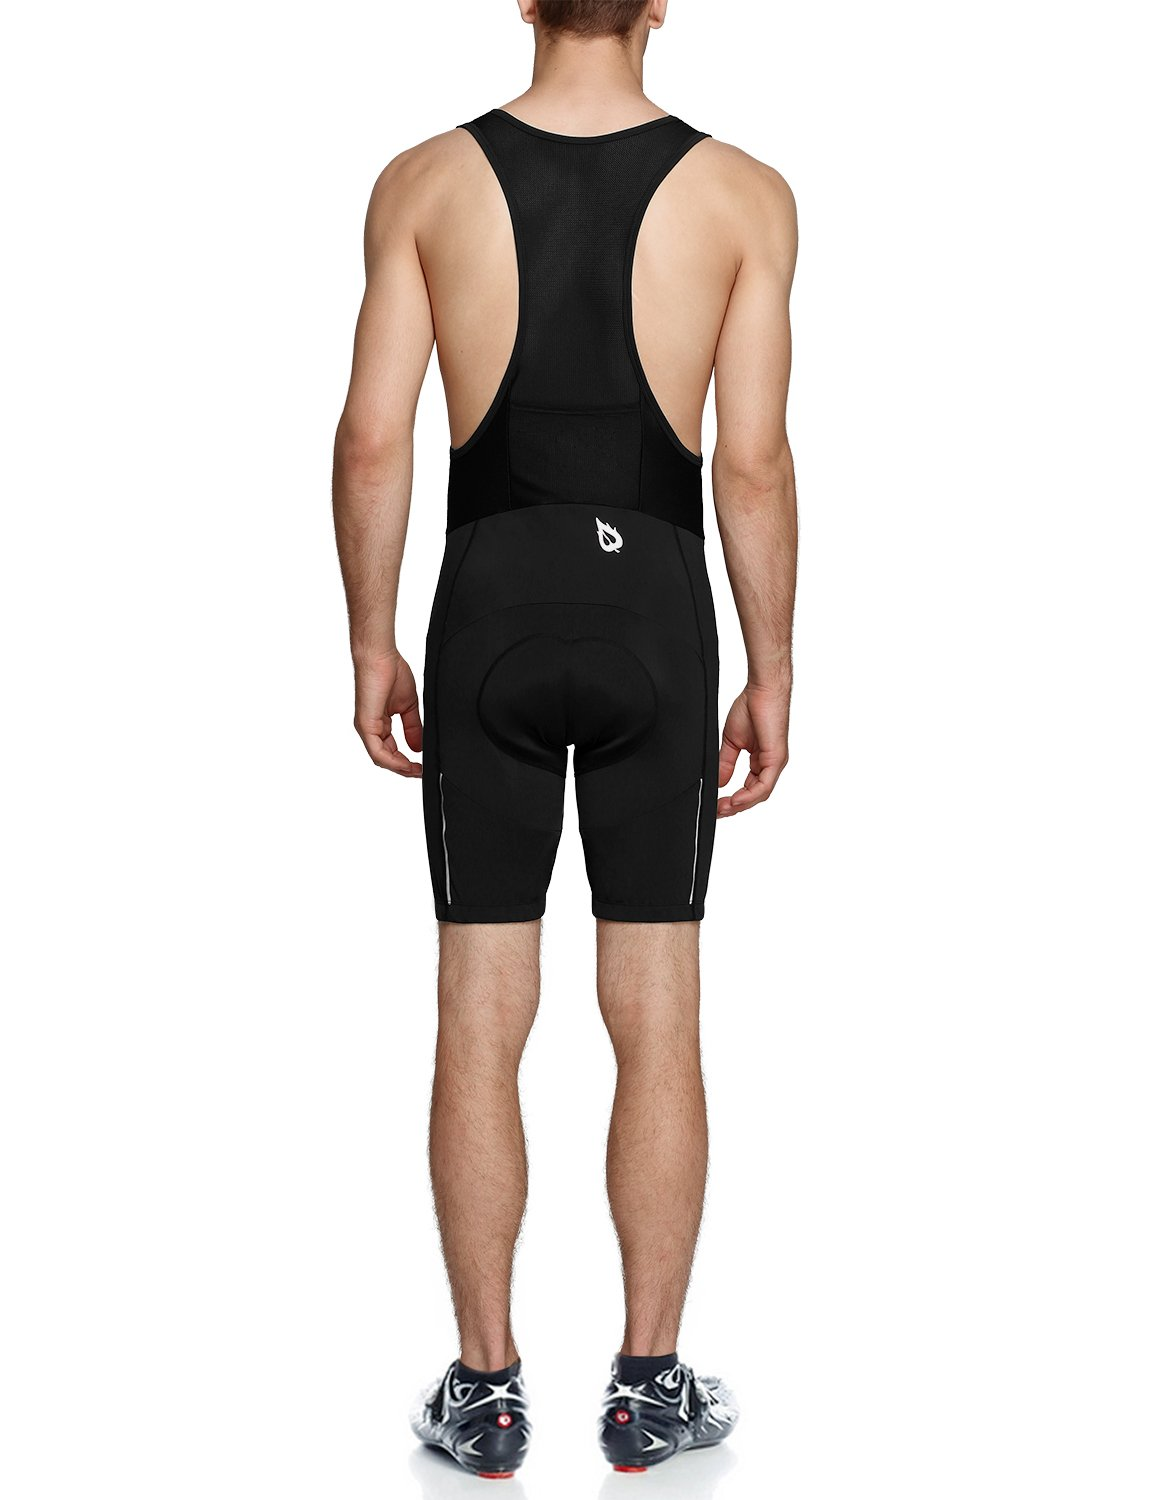 Baleaf Men S Pro Ii Gel Padded Cycling Bib Shorts Upf